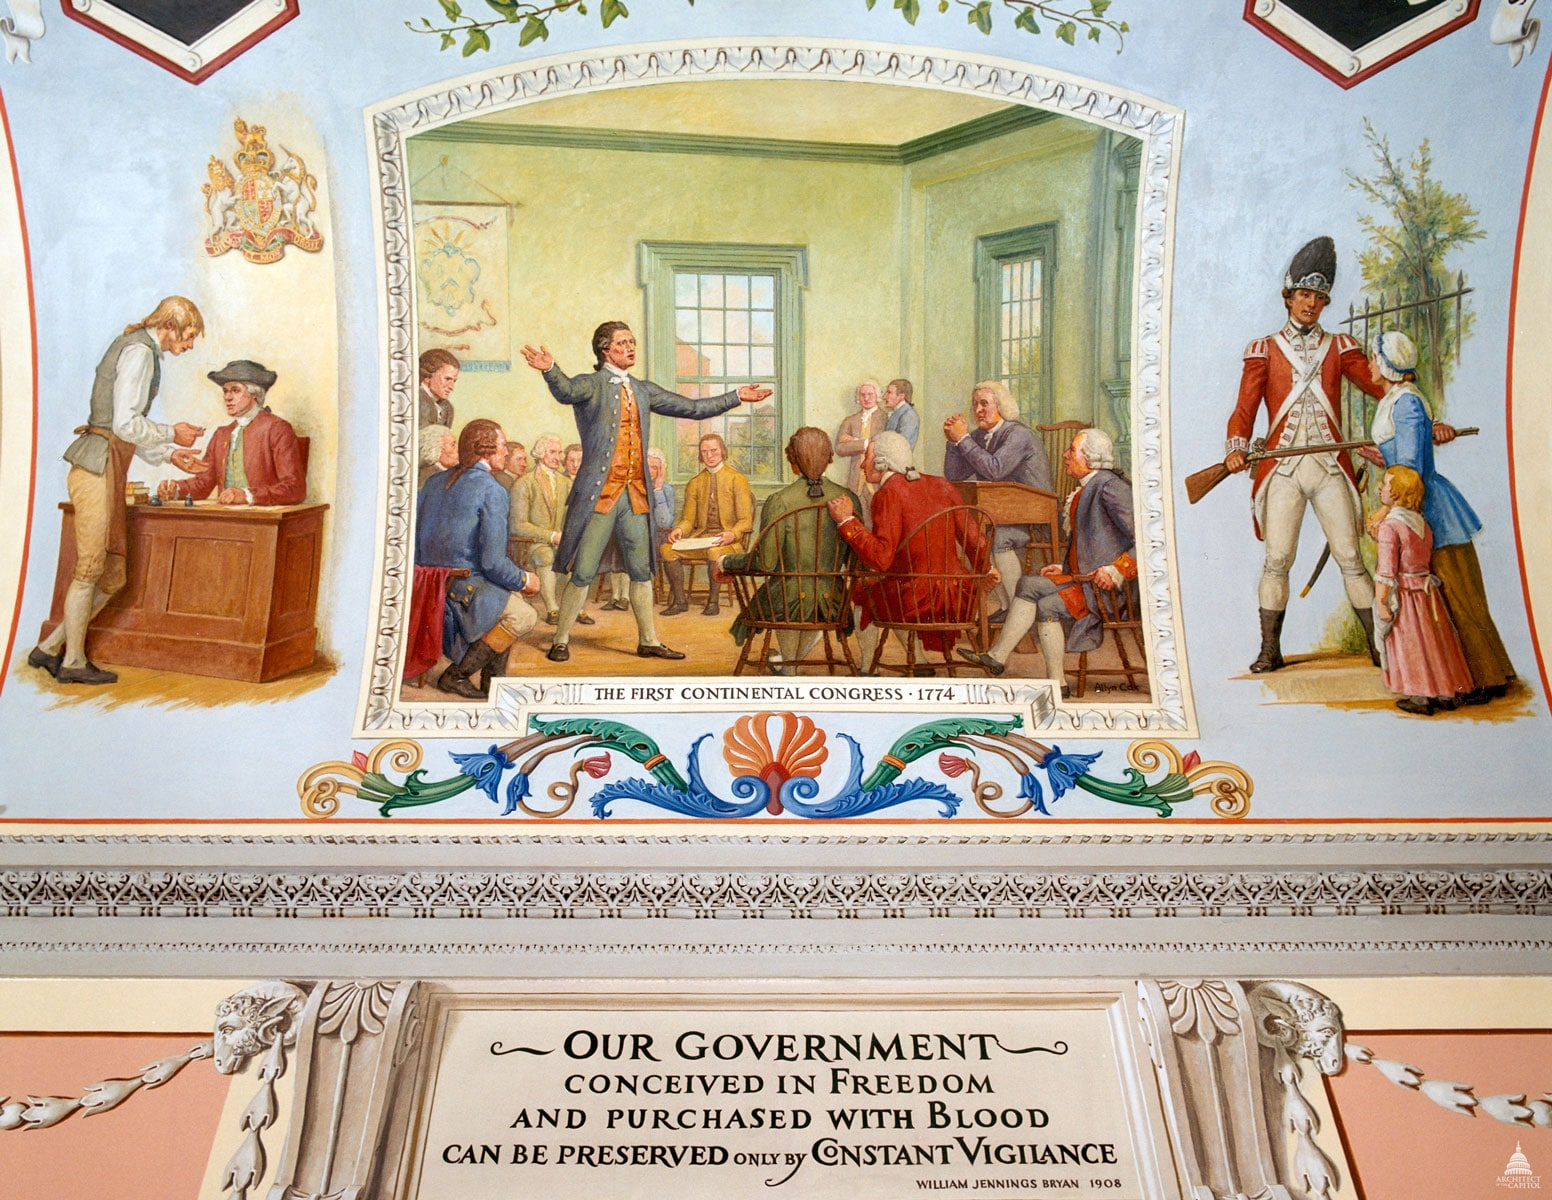 The First Continental Congress met in Carpenters' Hall, Philadelphia, on the 5th of September, 1774. This Congress resulted from an almost universal and simultaneous demand from the various colonies. The first call came from Virginia.